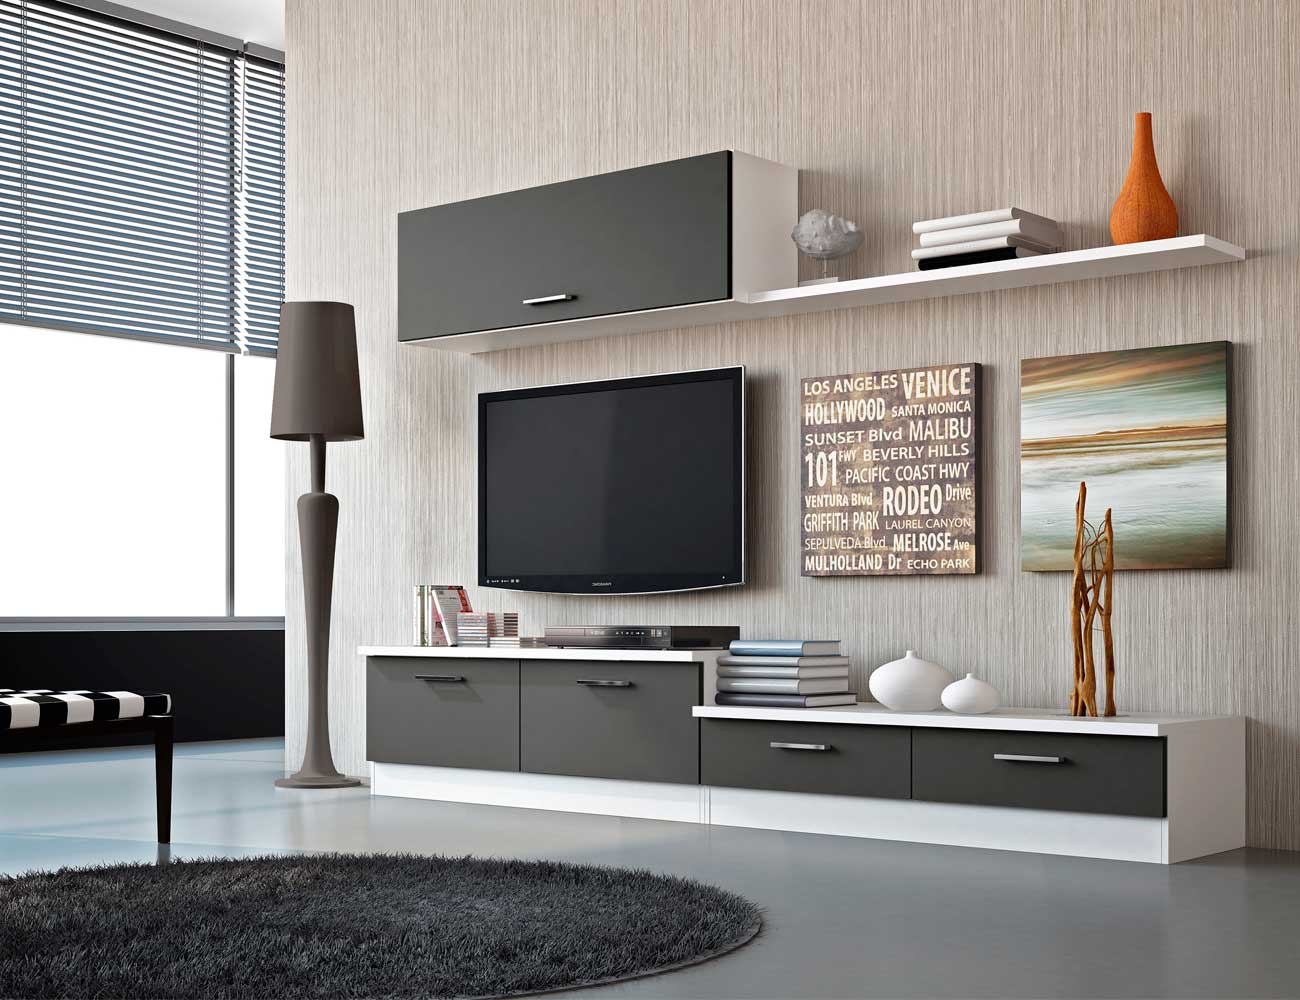 Mueble de sal n estilo moderno color blanco grafito - Mueble salon moderno blanco ...